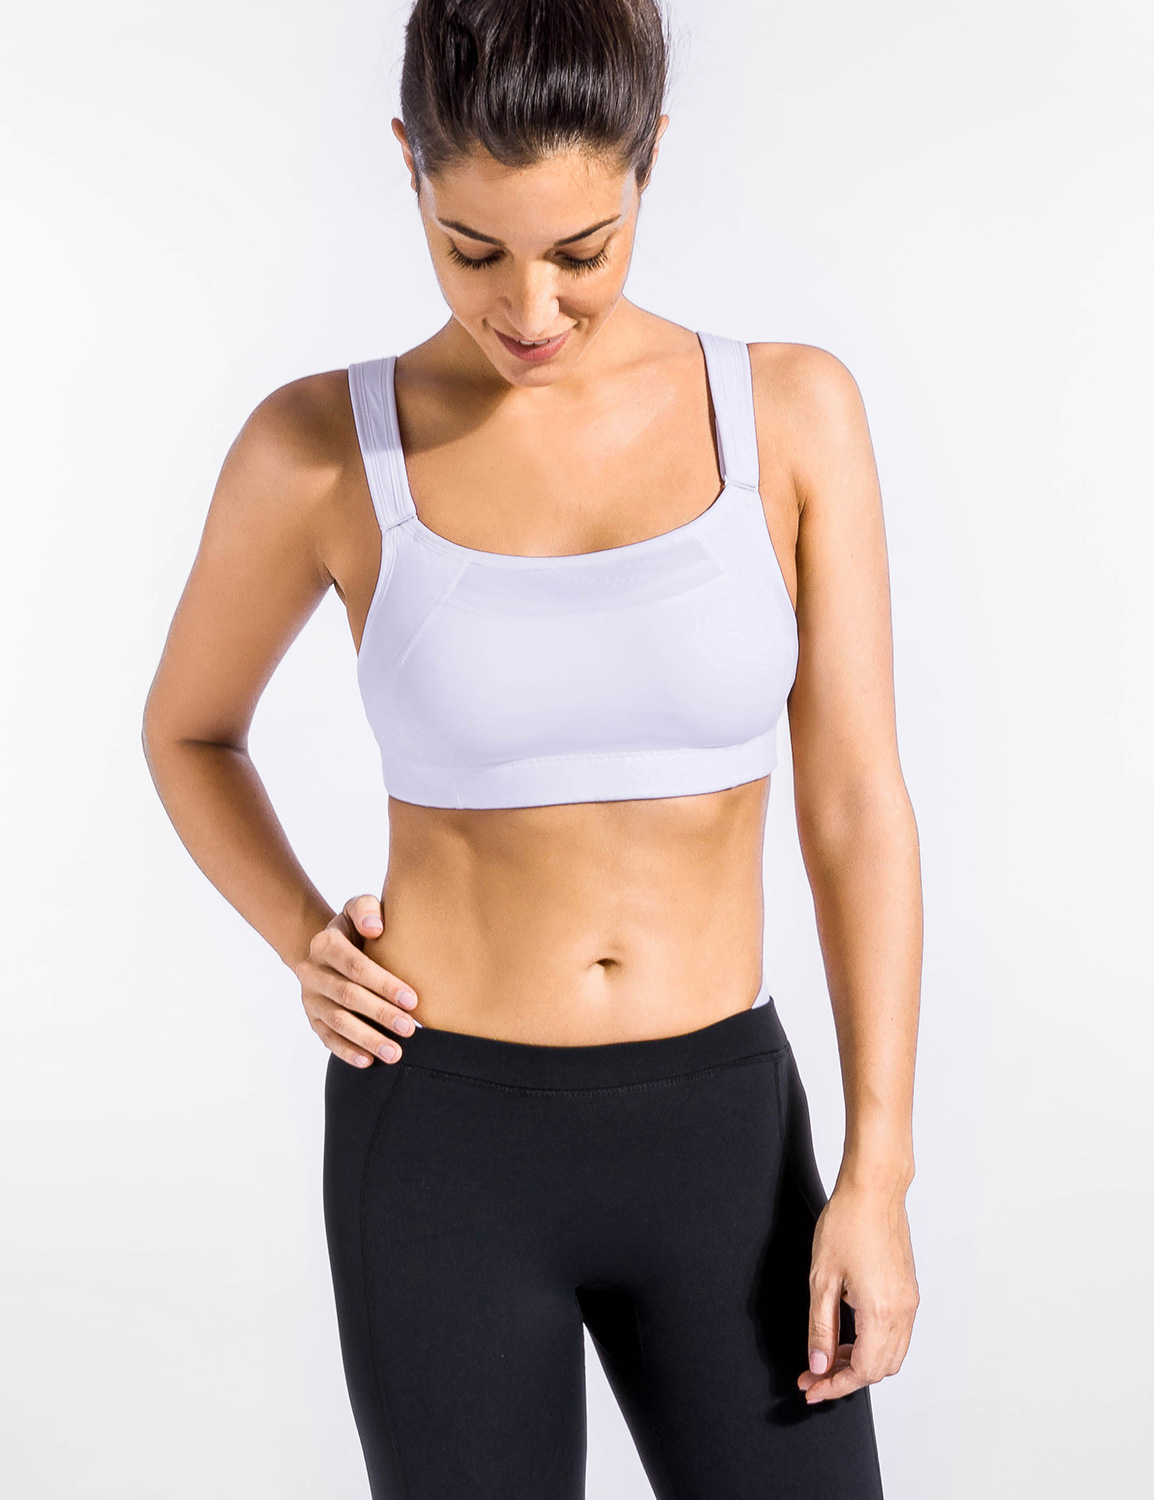 Women-039-s-Bounce-Control-Wire-Free-High-Impact-Max-Support-Sports-Bra thumbnail 13